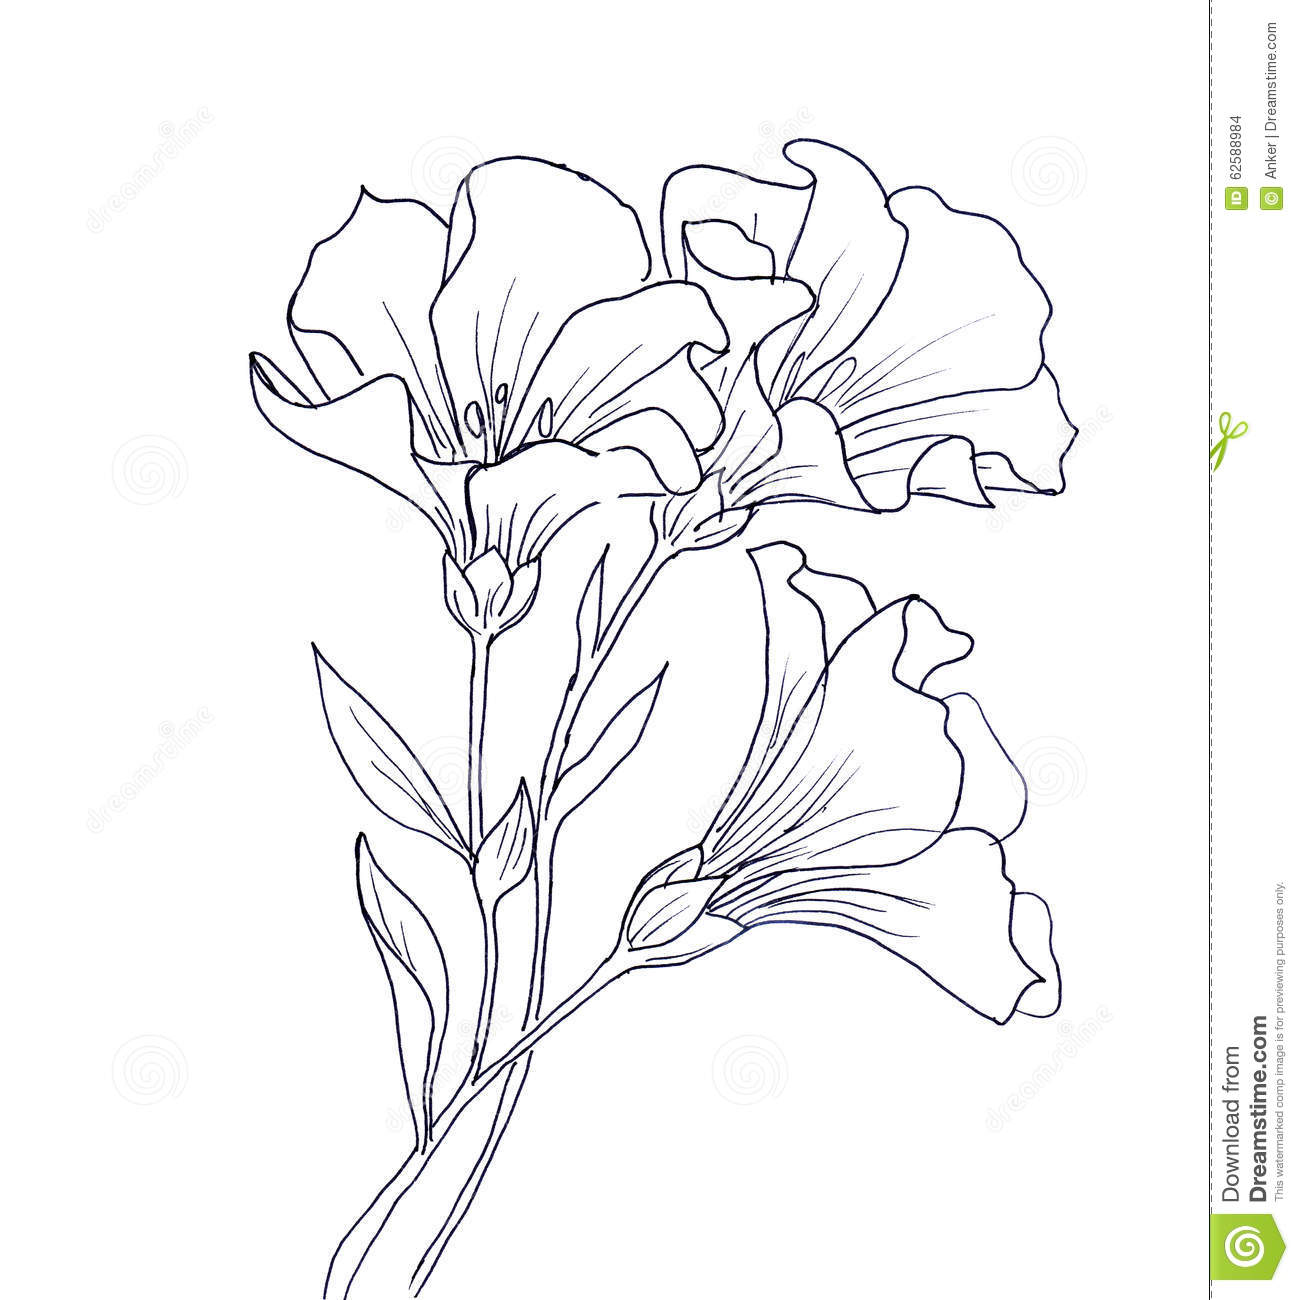 Line Drawing Flowers Blossom : Line ink drawing of flower stock illustration